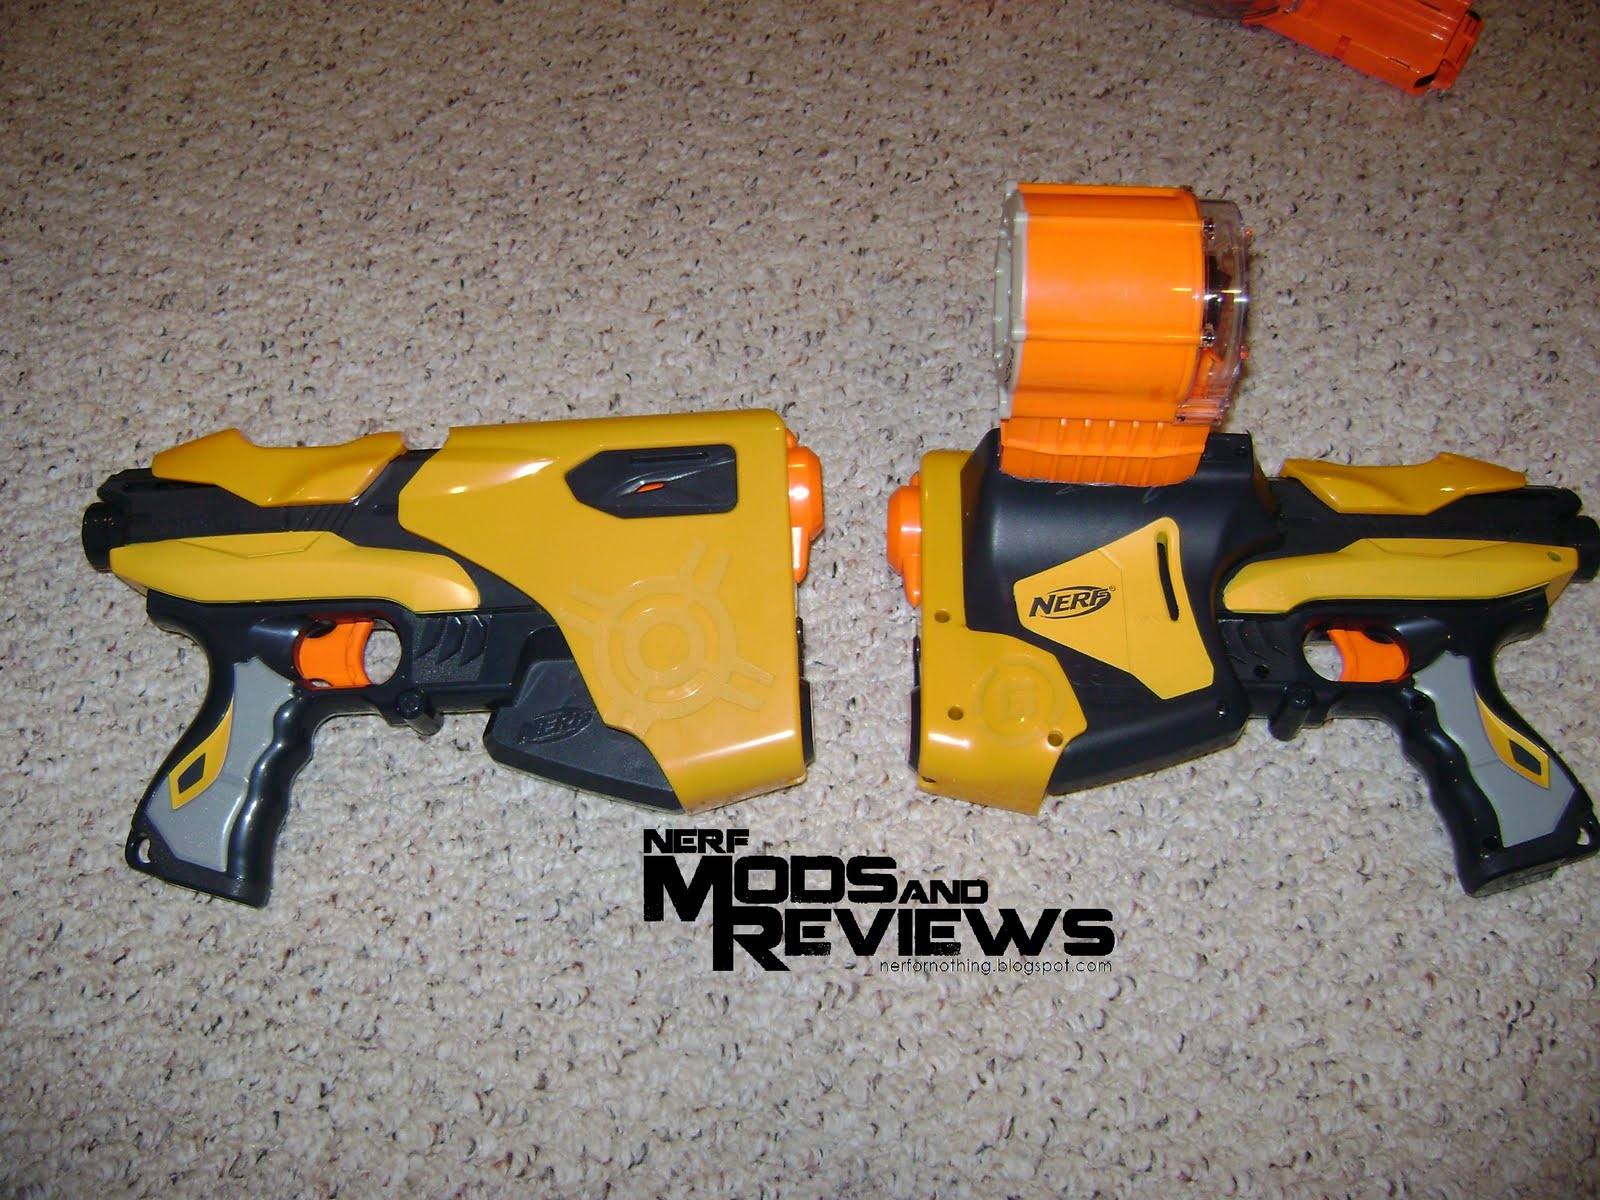 Urban Taggers.: Nerf Mods & Reviews: Nerf Speedload 6 with ...  Urban Taggers.:...